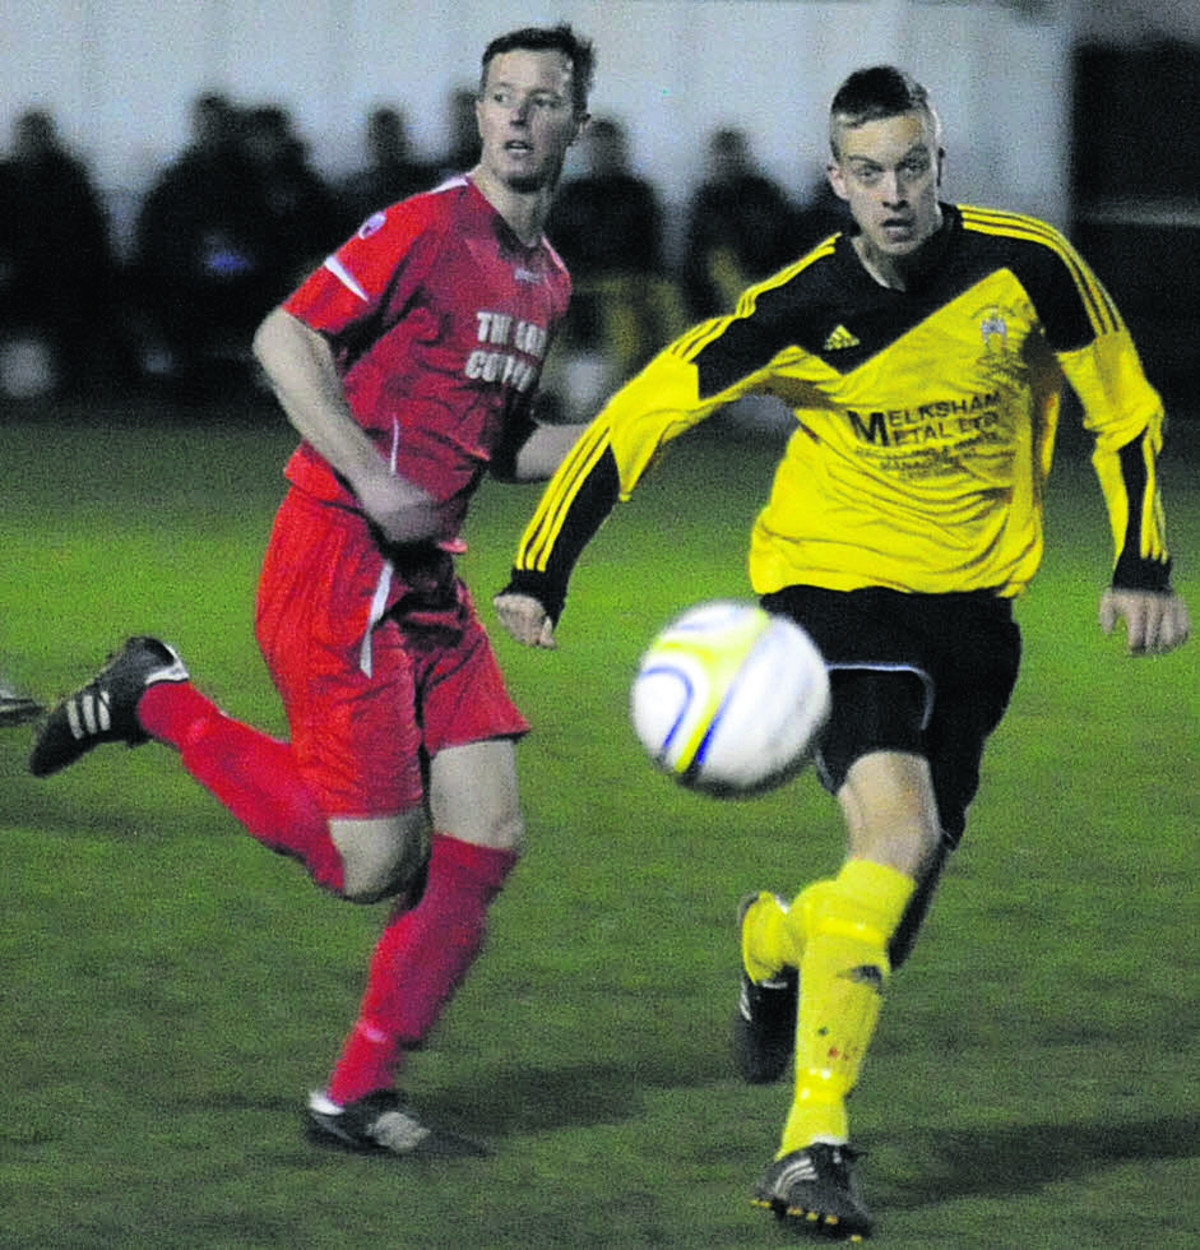 Melksham's hat-trick hero Gary Higdon (yellow) chases down possession during Tuesday night's semi-final